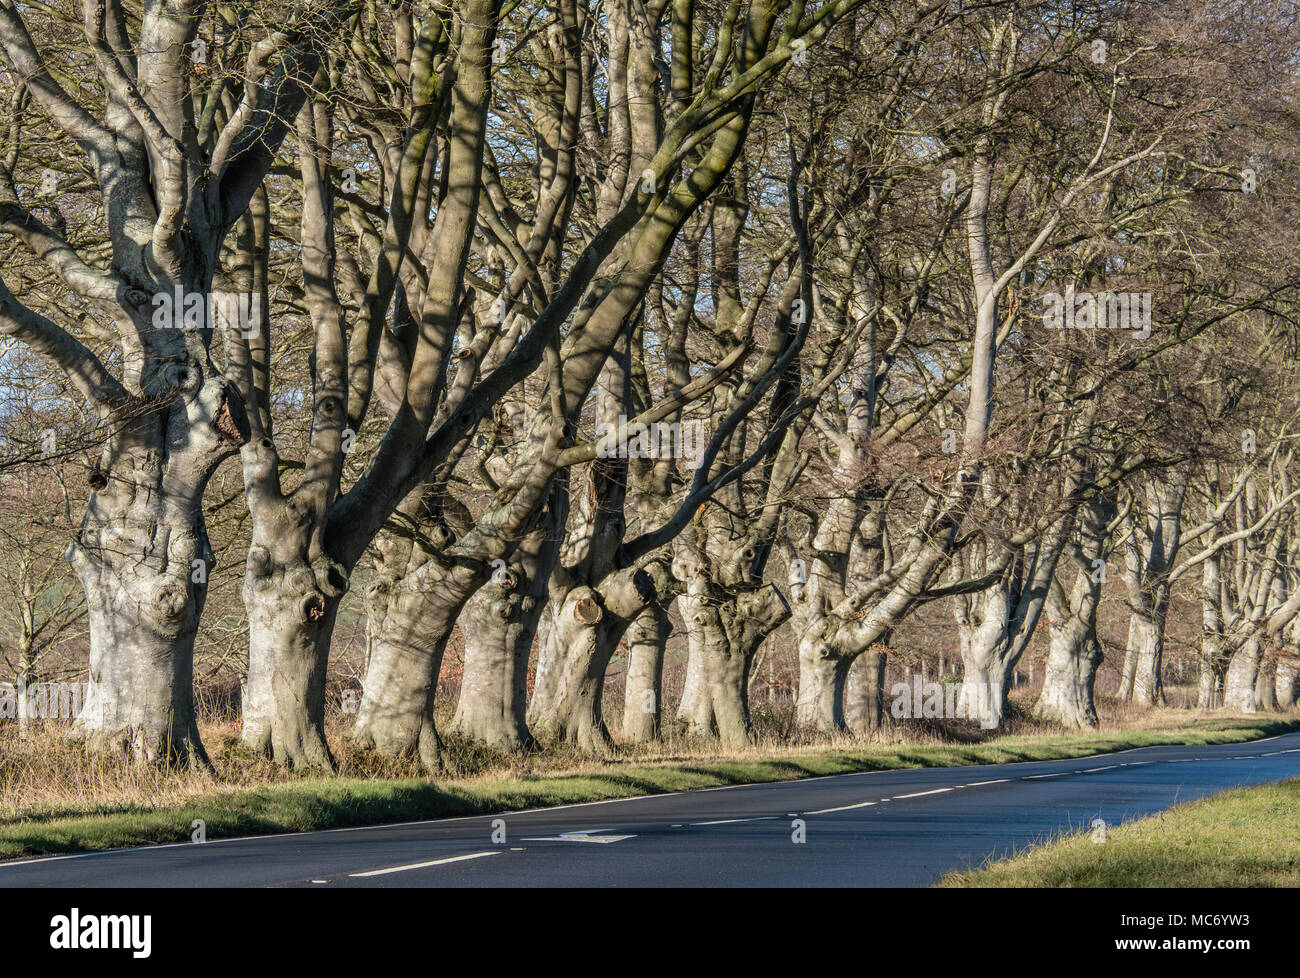 A road lined with Beech trees in Winter with bare trunks and branches in Dorset, UK - Stock Image